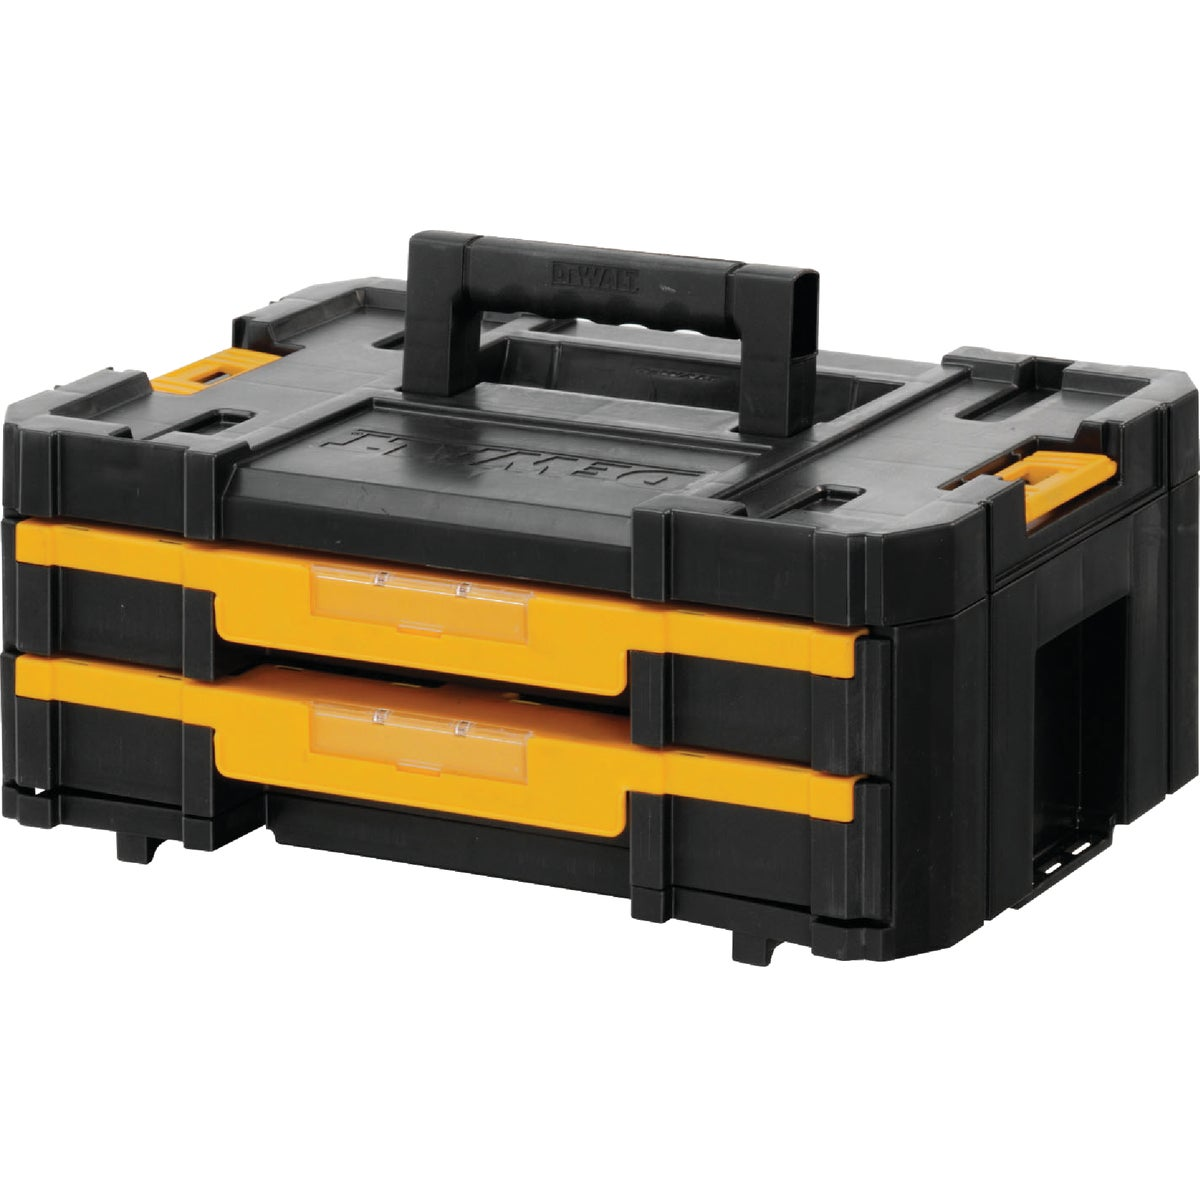 TSTAK CASE W/DRAWERS - DWST17804 by Stanley Tools